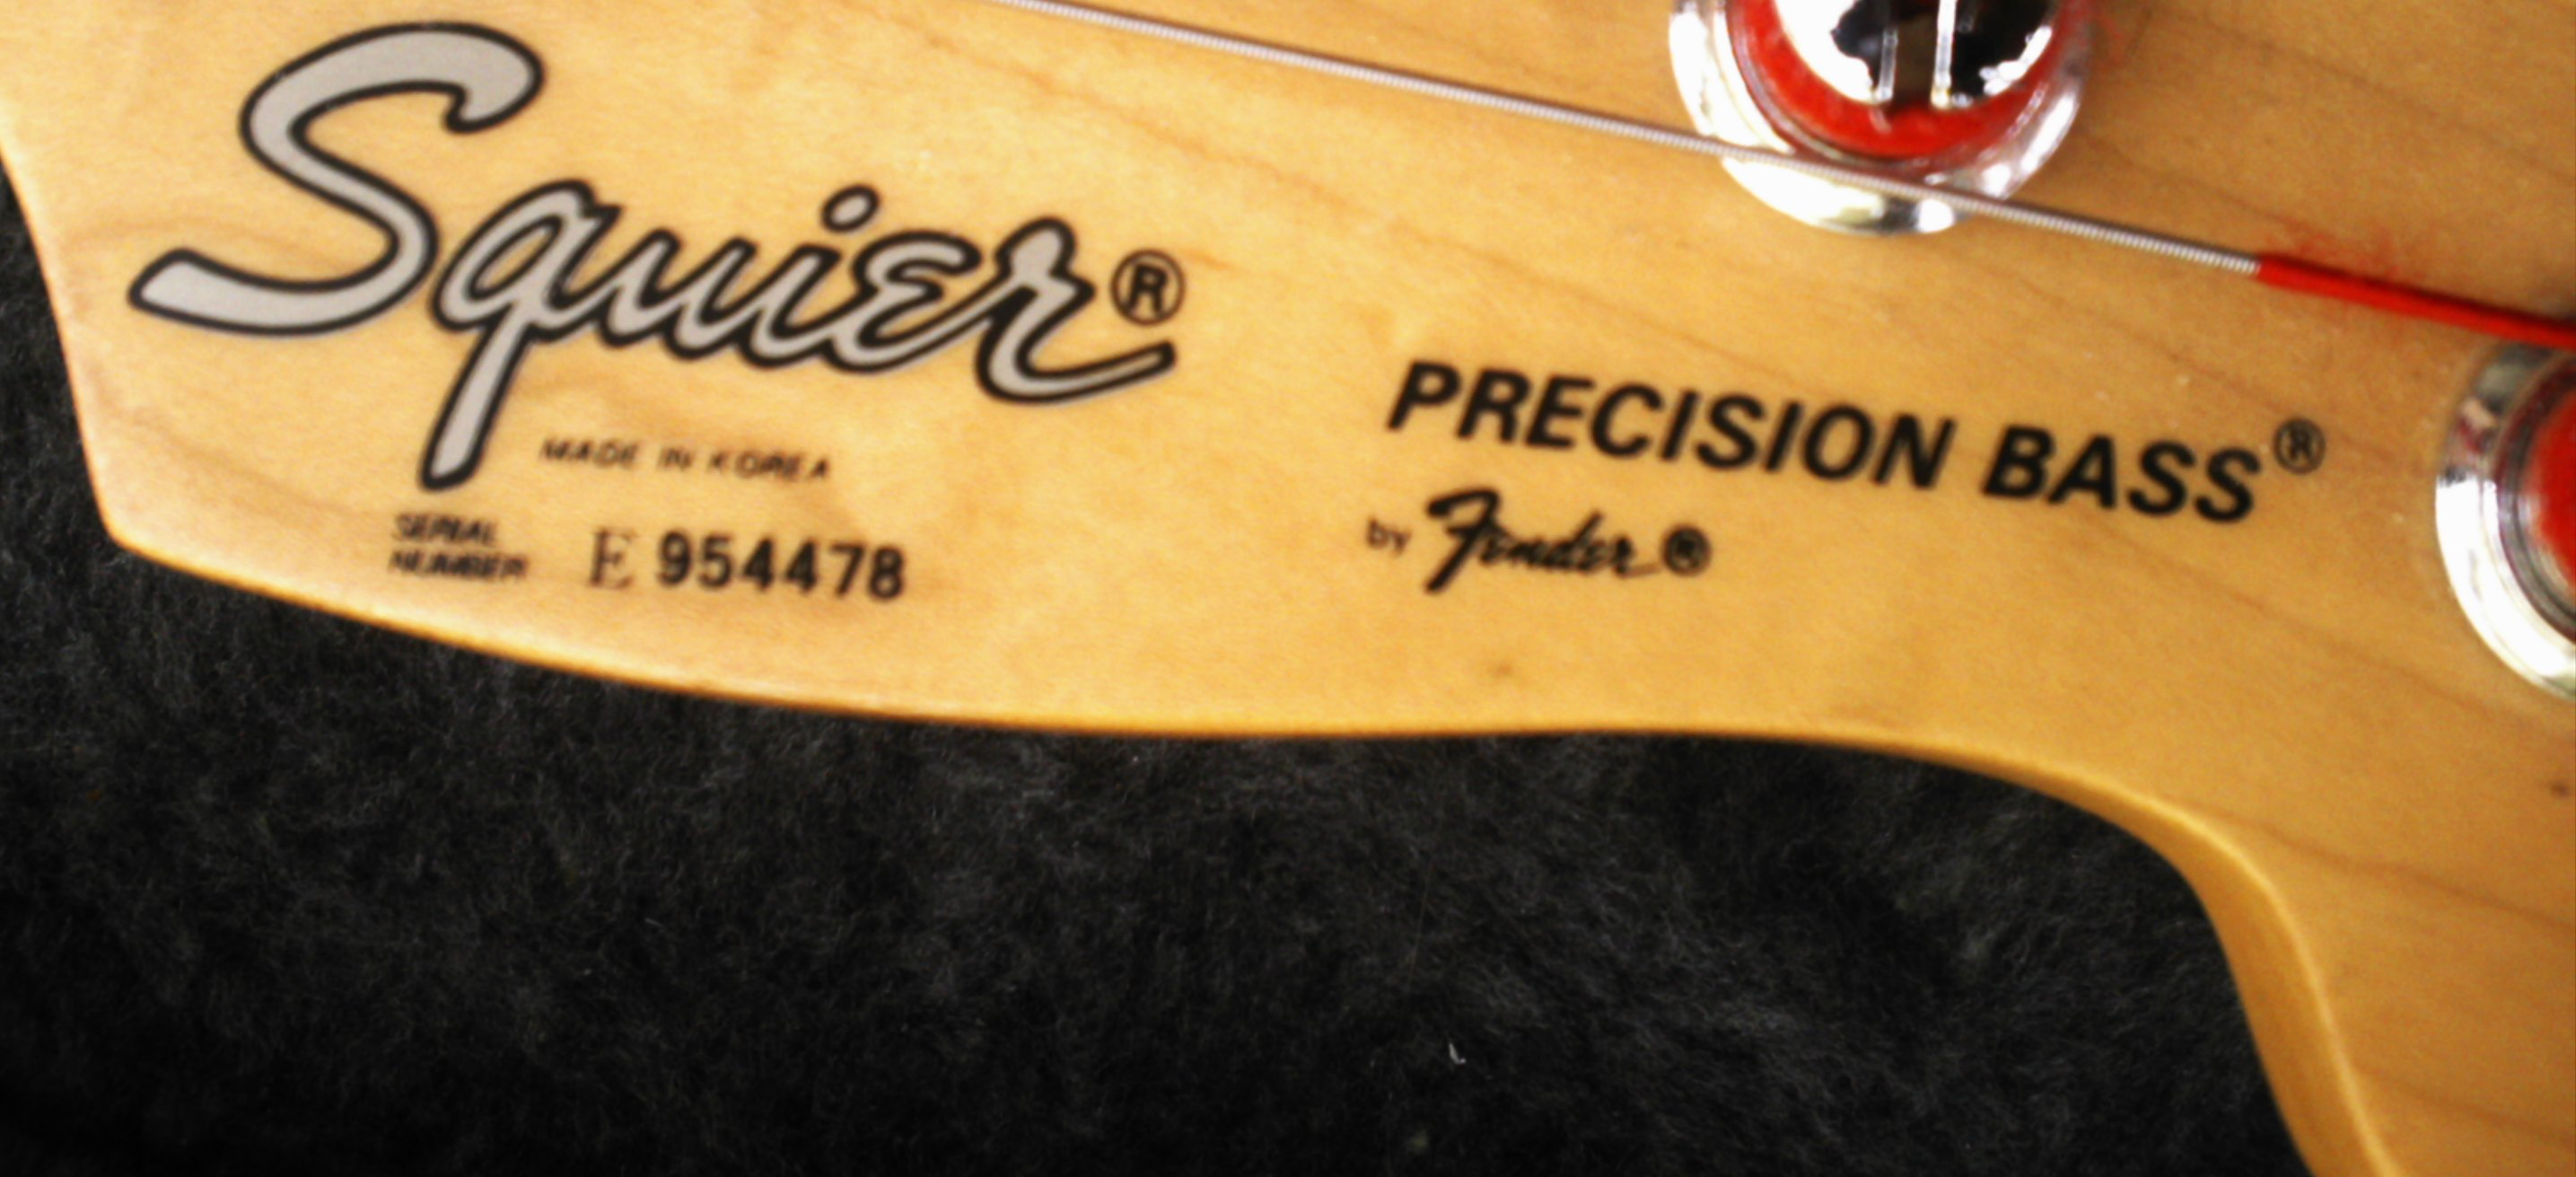 dating squier stratocaster Just picked up a squire at a pawn shop today and needed some help dating it its a squire stratocaster  forum  squier strat forum  dating a korean made squire.